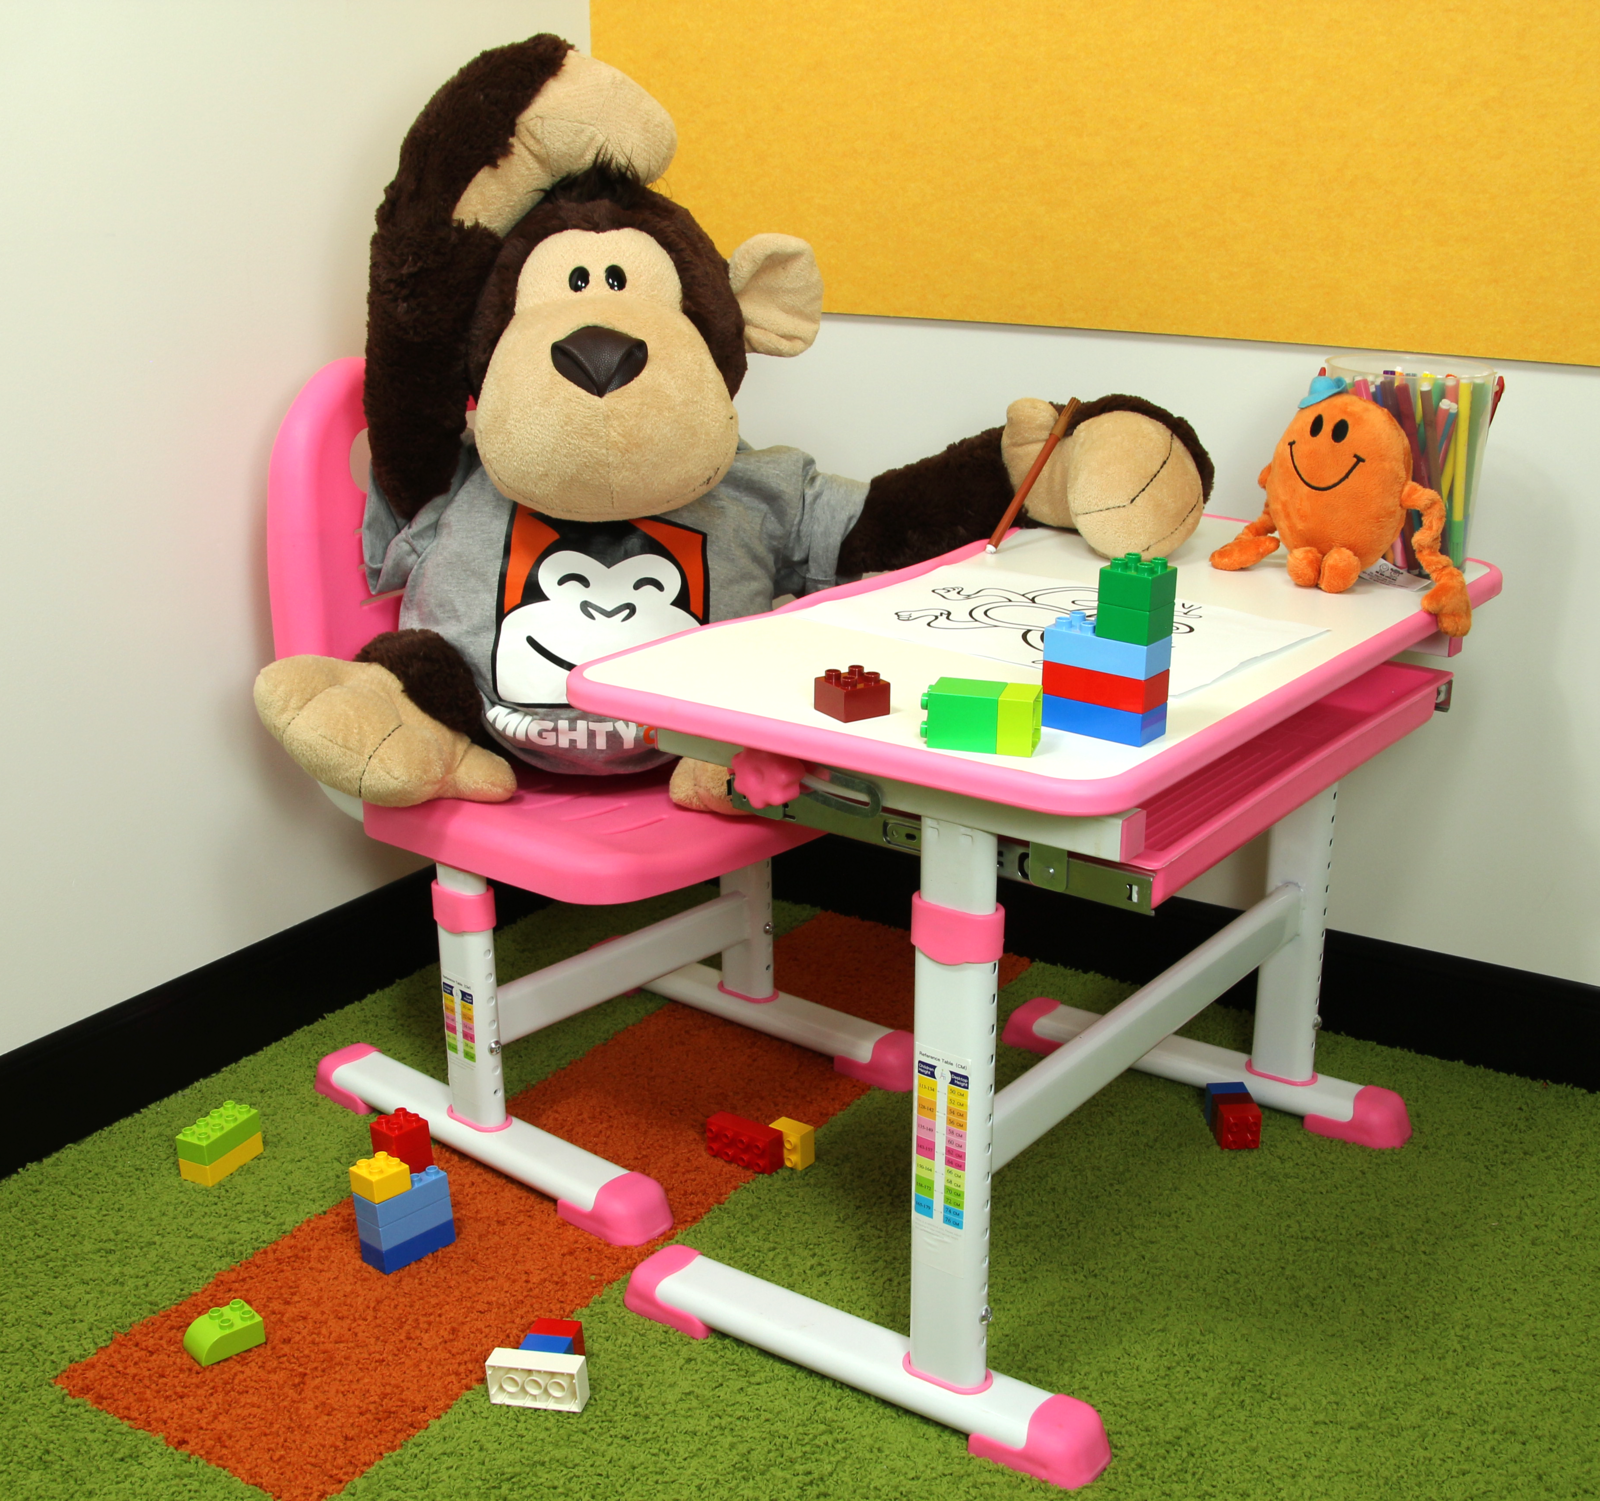 Gorilla Office: Kids Height Adjustable Desk with Chair - Pink image